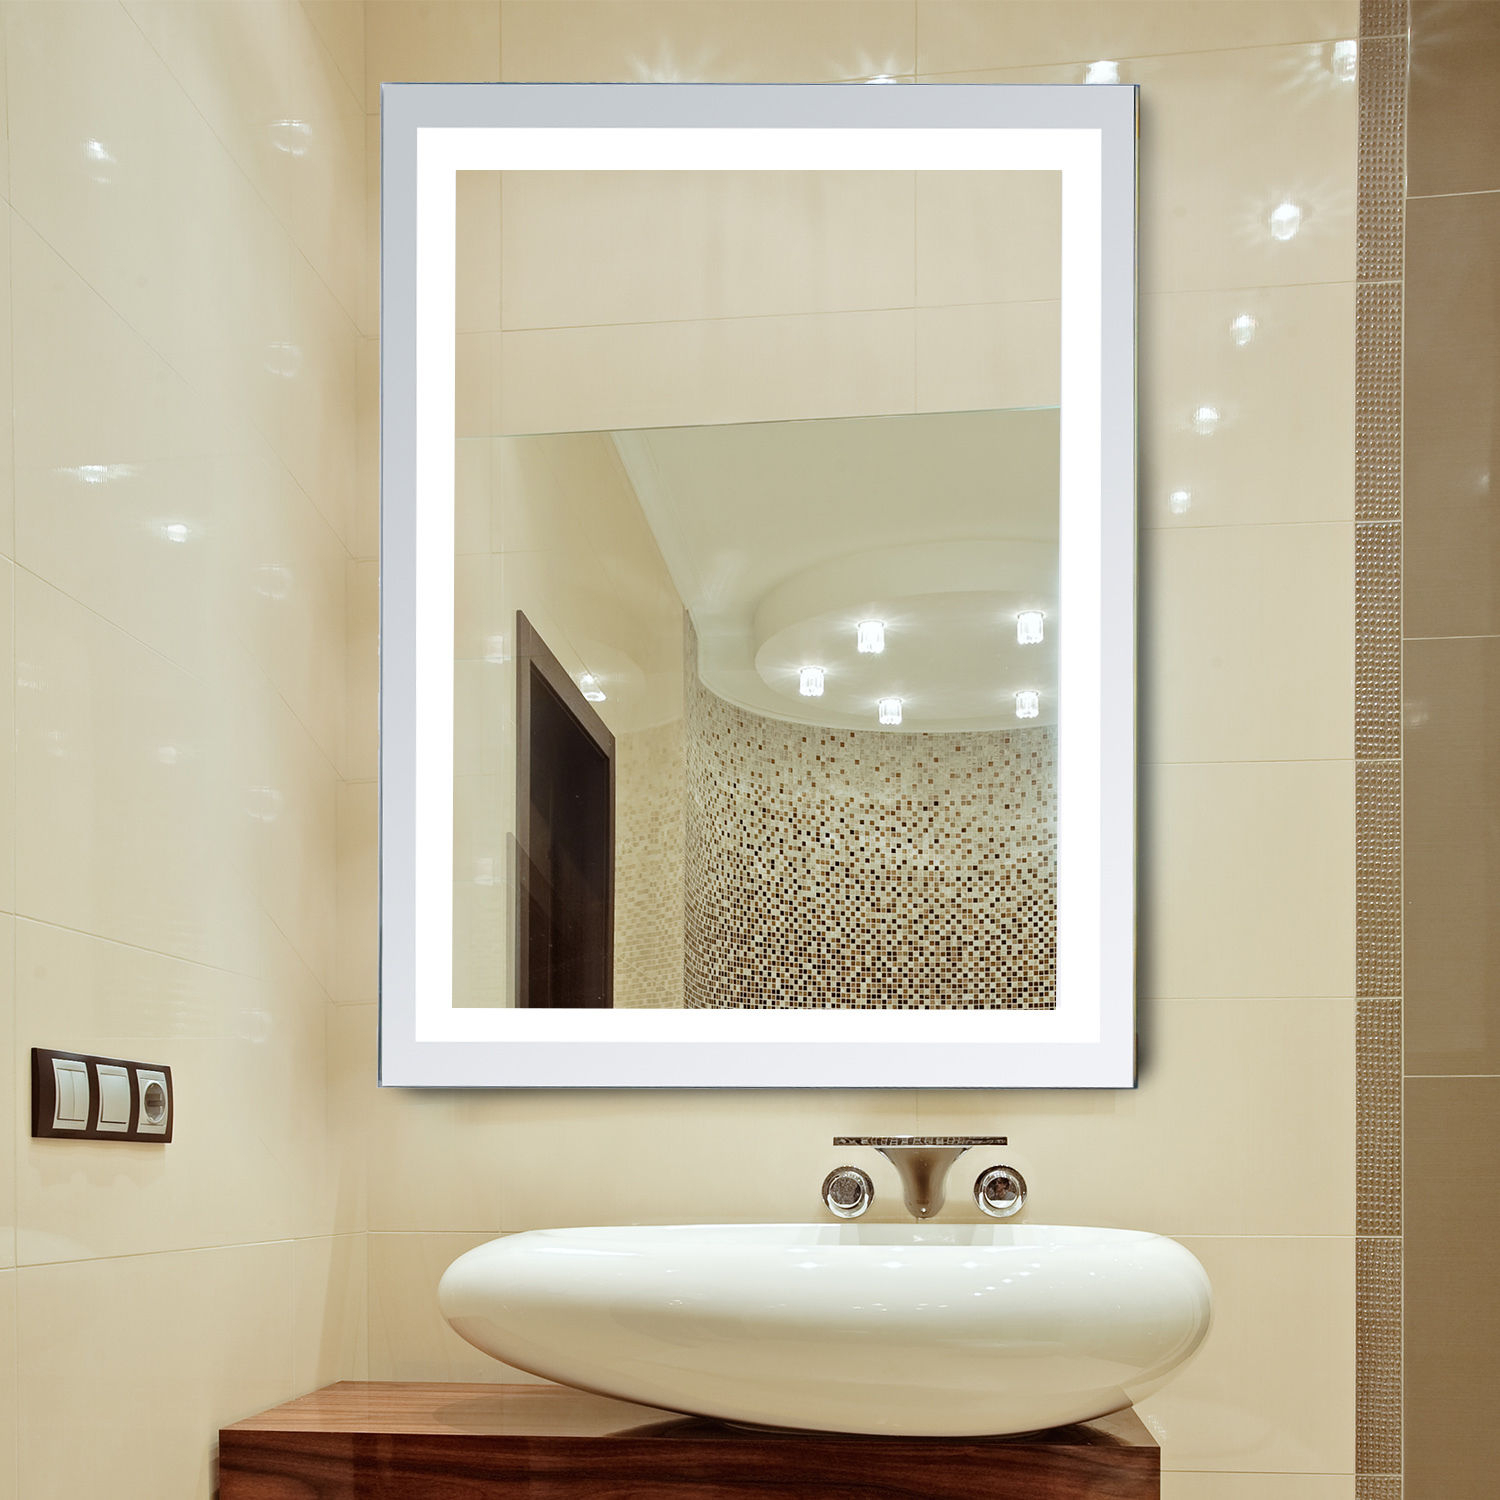 Details About Led Illuminated Bathroom Wall Mirrors With Lights Modern  Makeup Vanity Mirror With Wall Mirrors (Image 7 of 20)